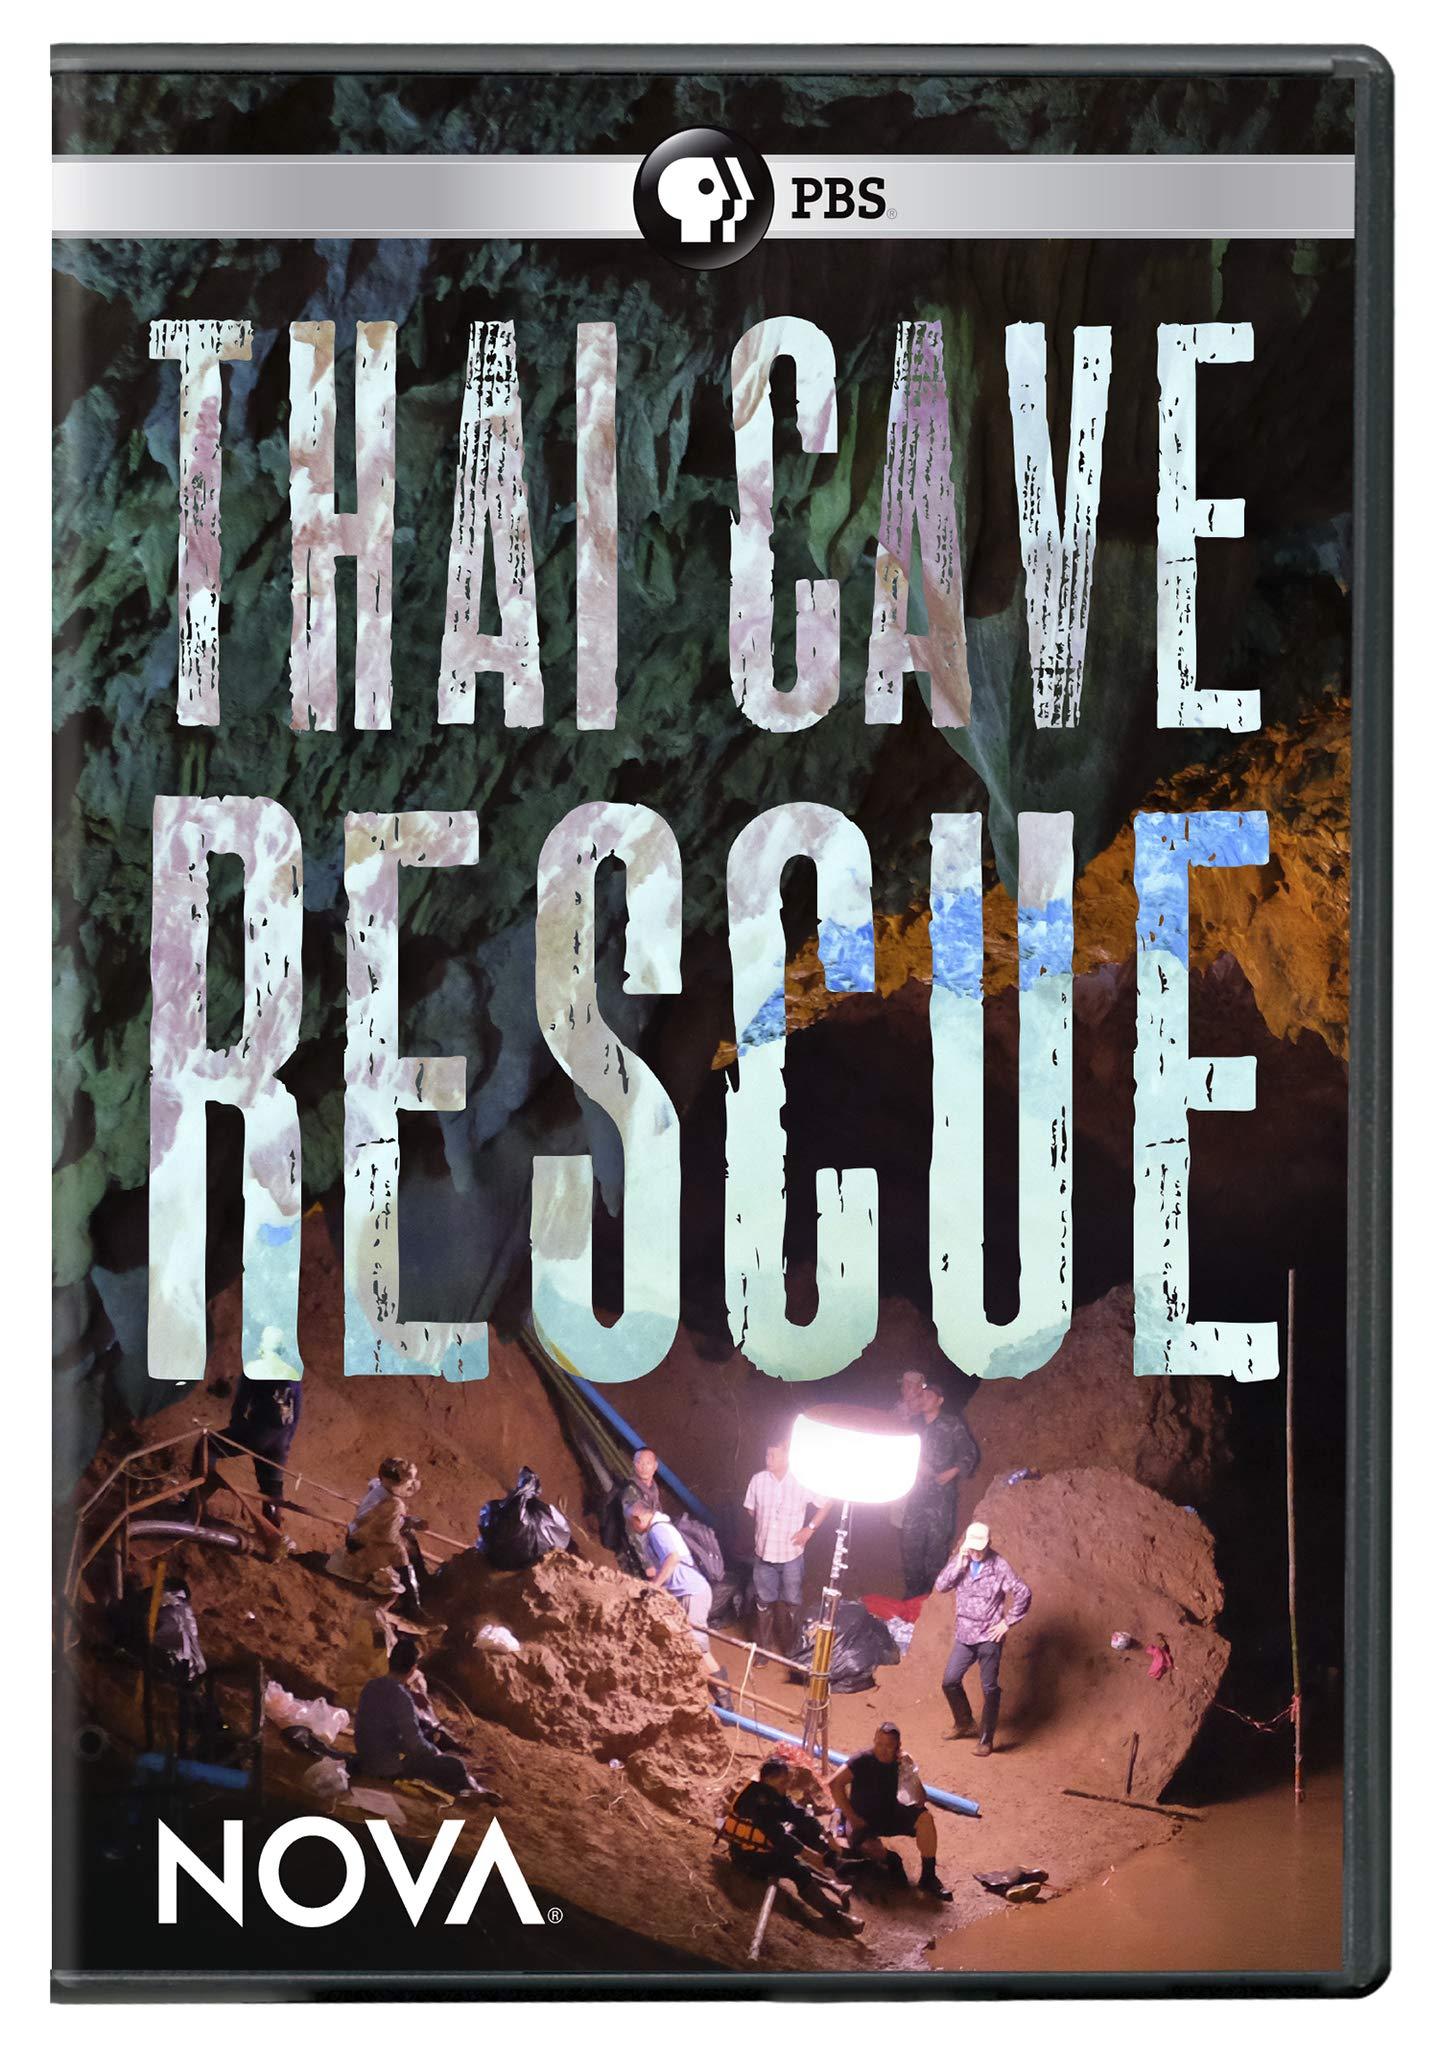 DVD : Nova: Thai Cave Rescue (DVD)